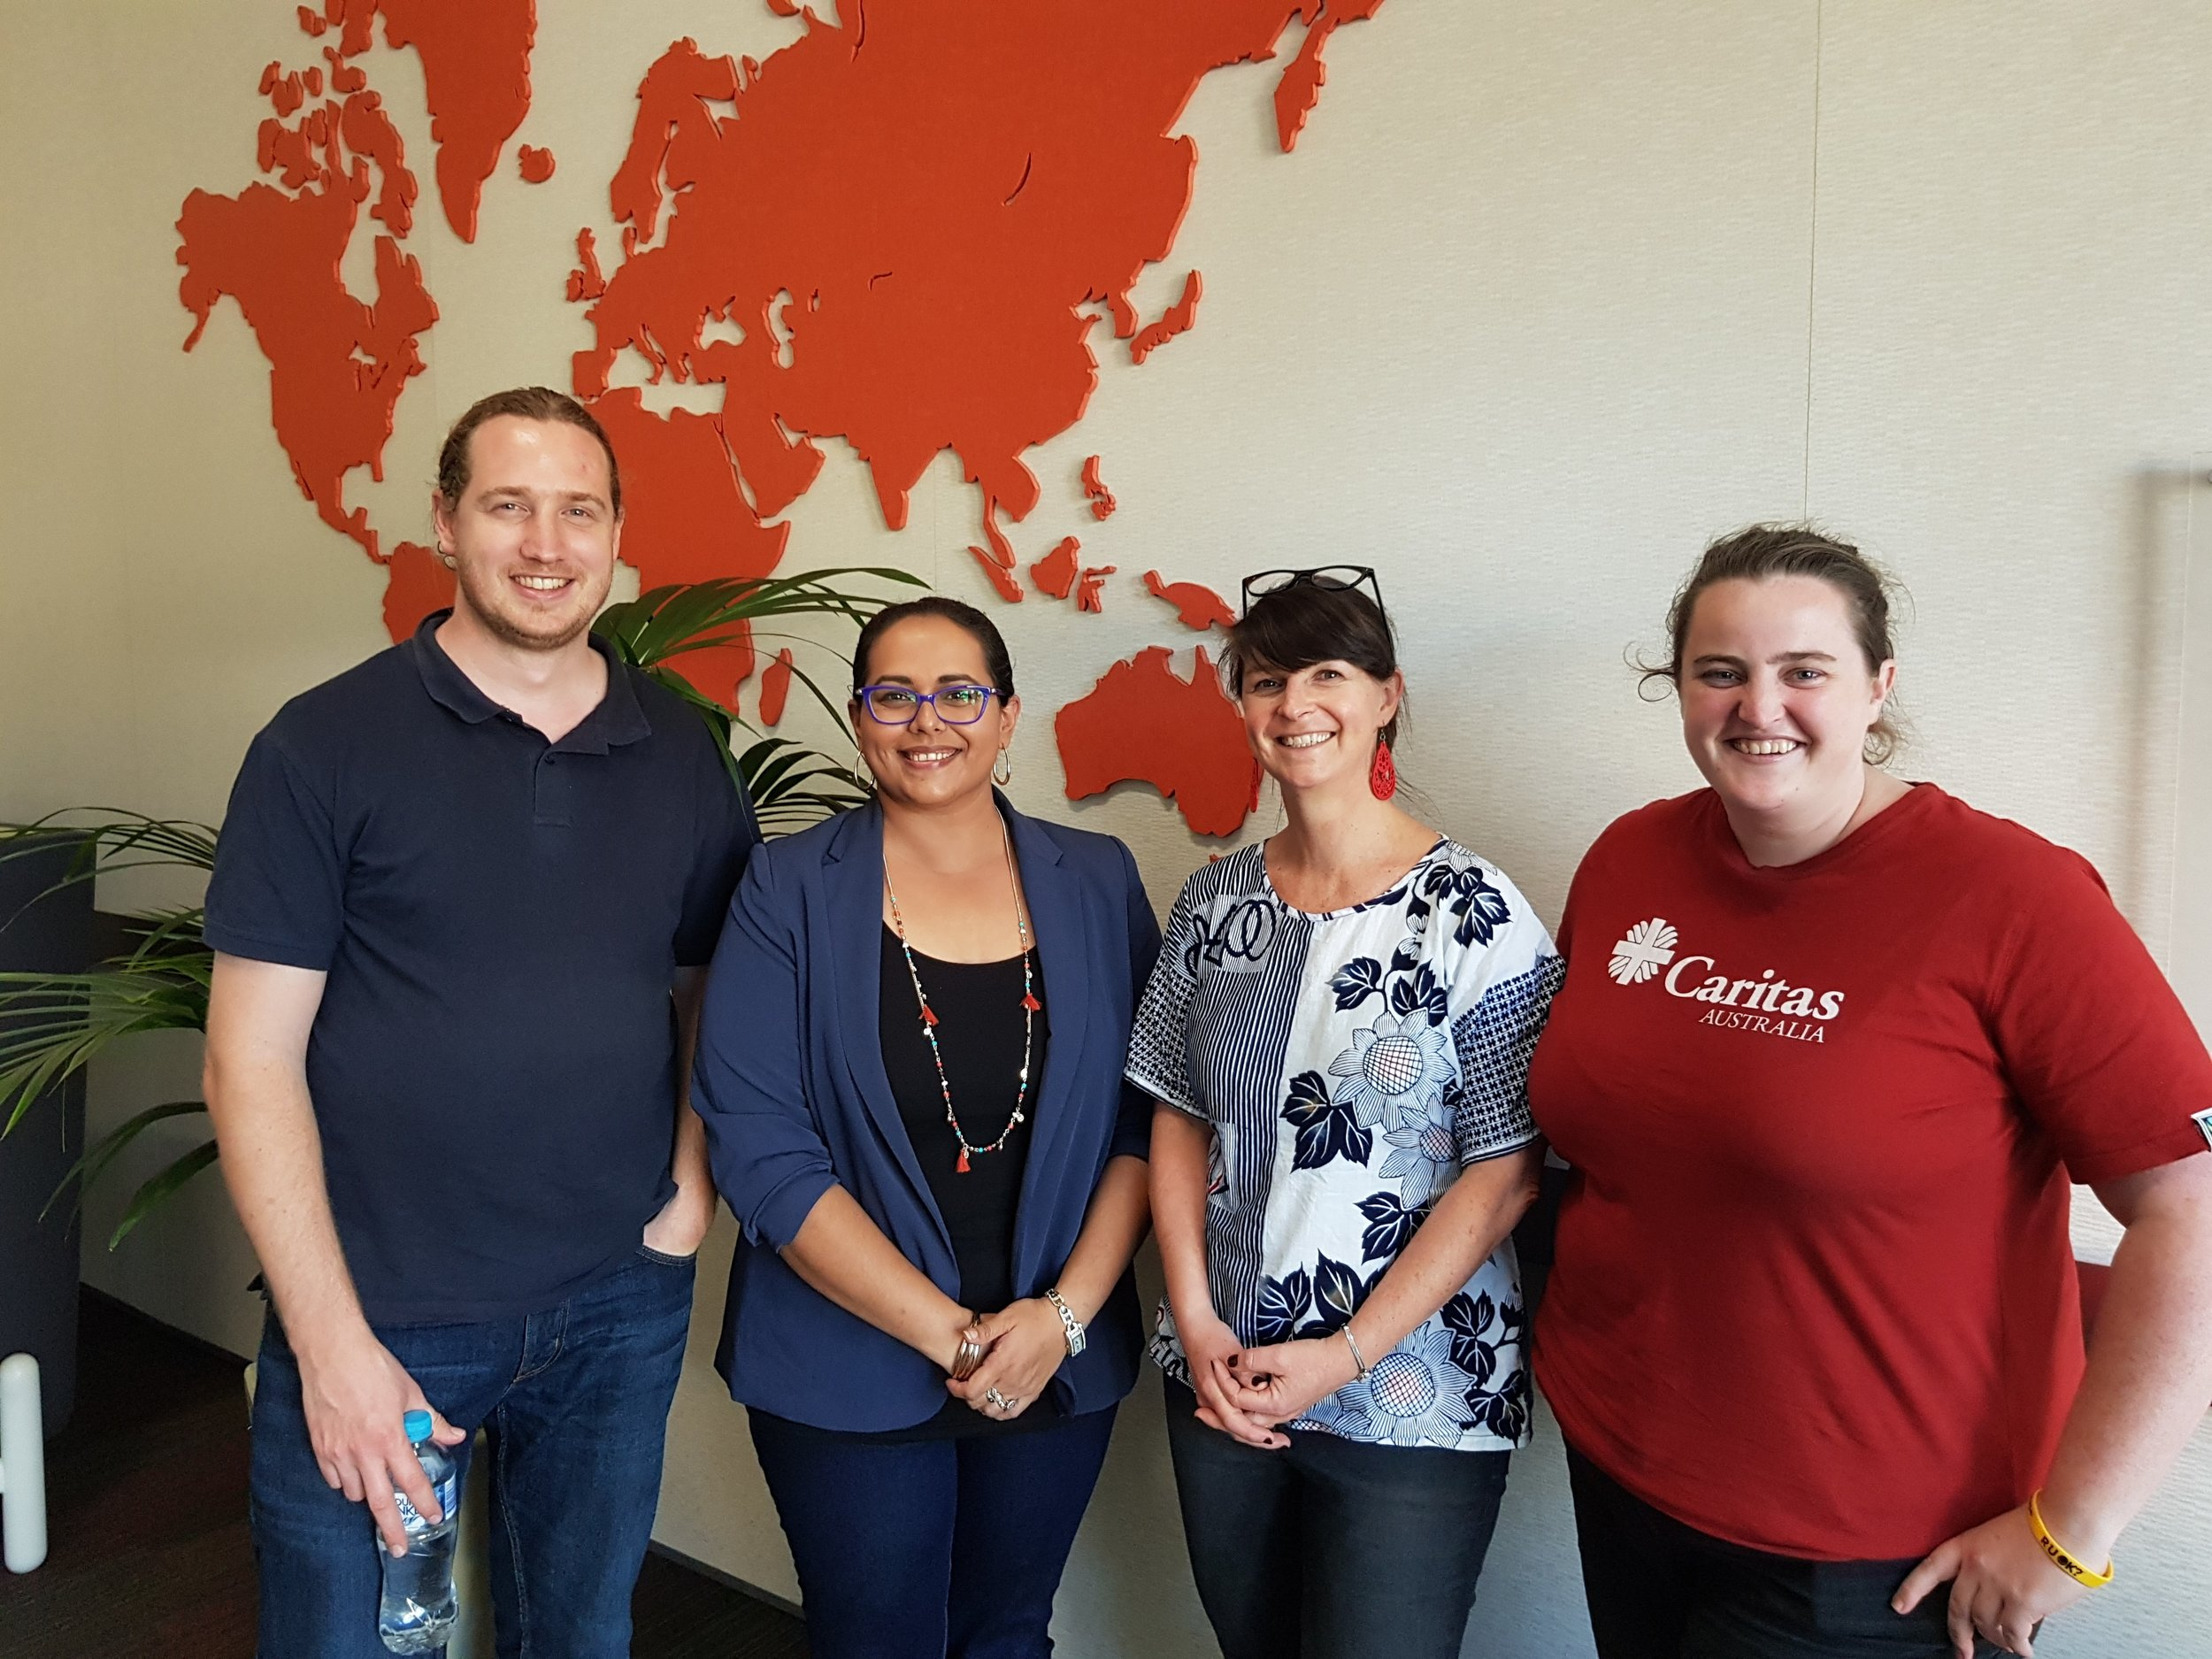 AbCF Community Development Officer Lauren Bowyer meeting with Carl, Lisa and Patrice at the Caritas Australia Sydney office.